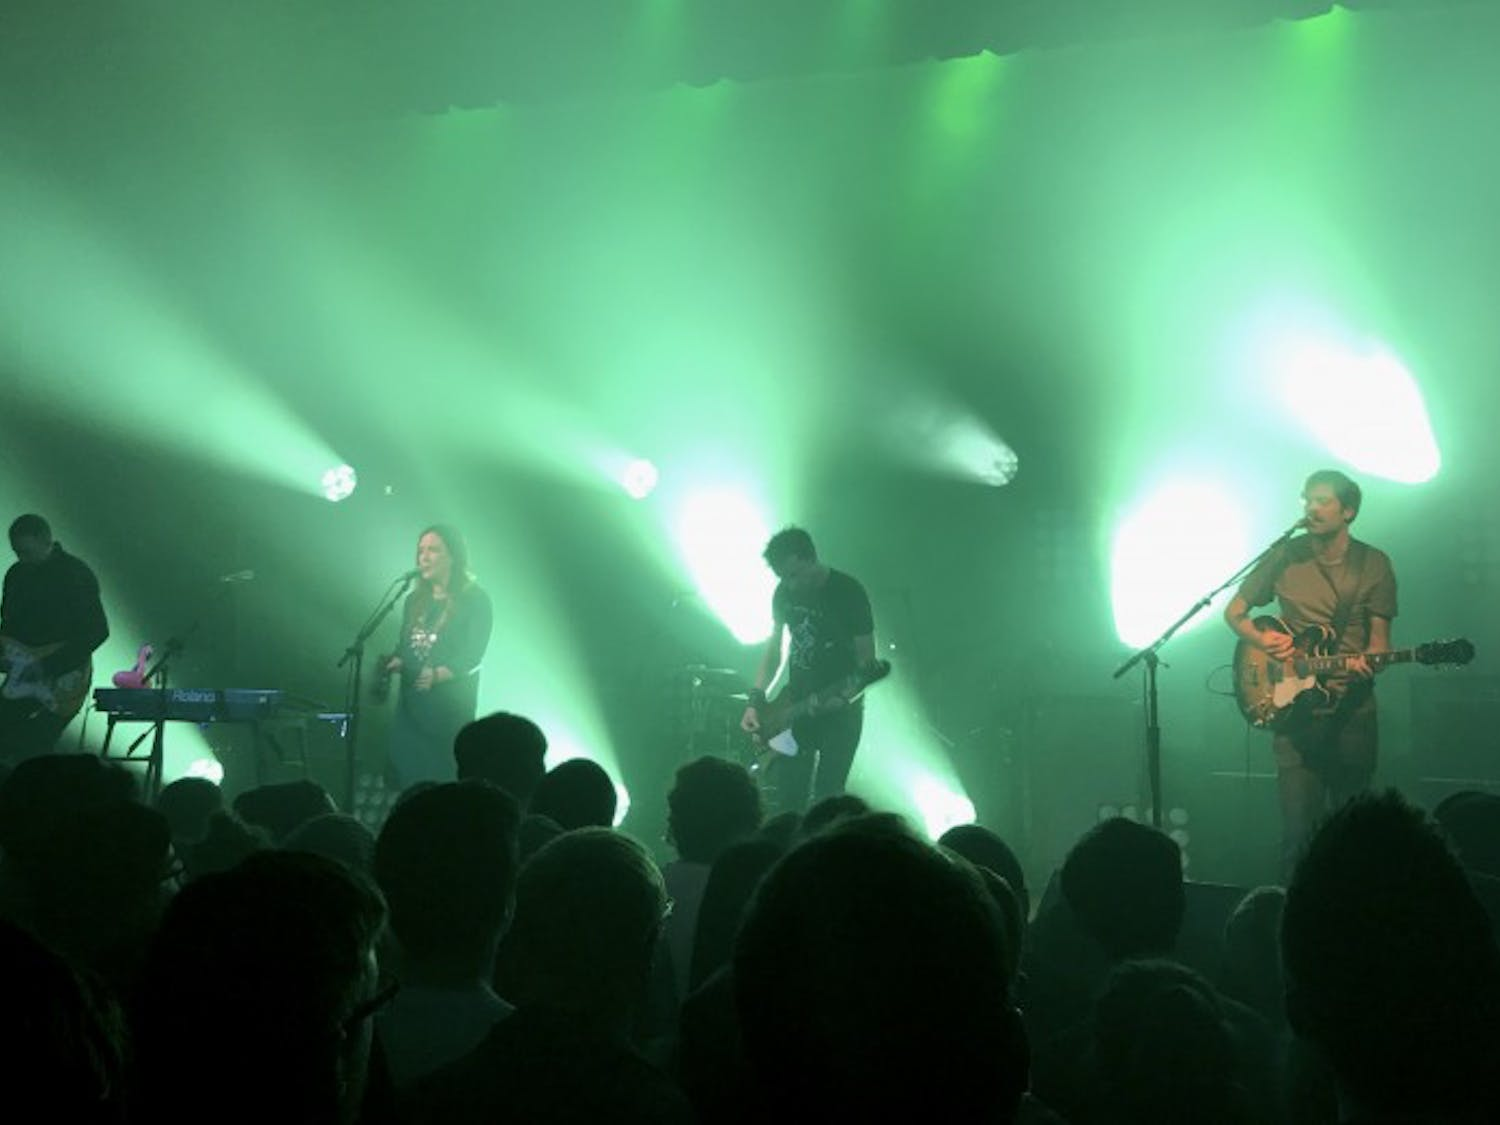 Slowdive's showmanship illustrated the benefits of listening to live music.